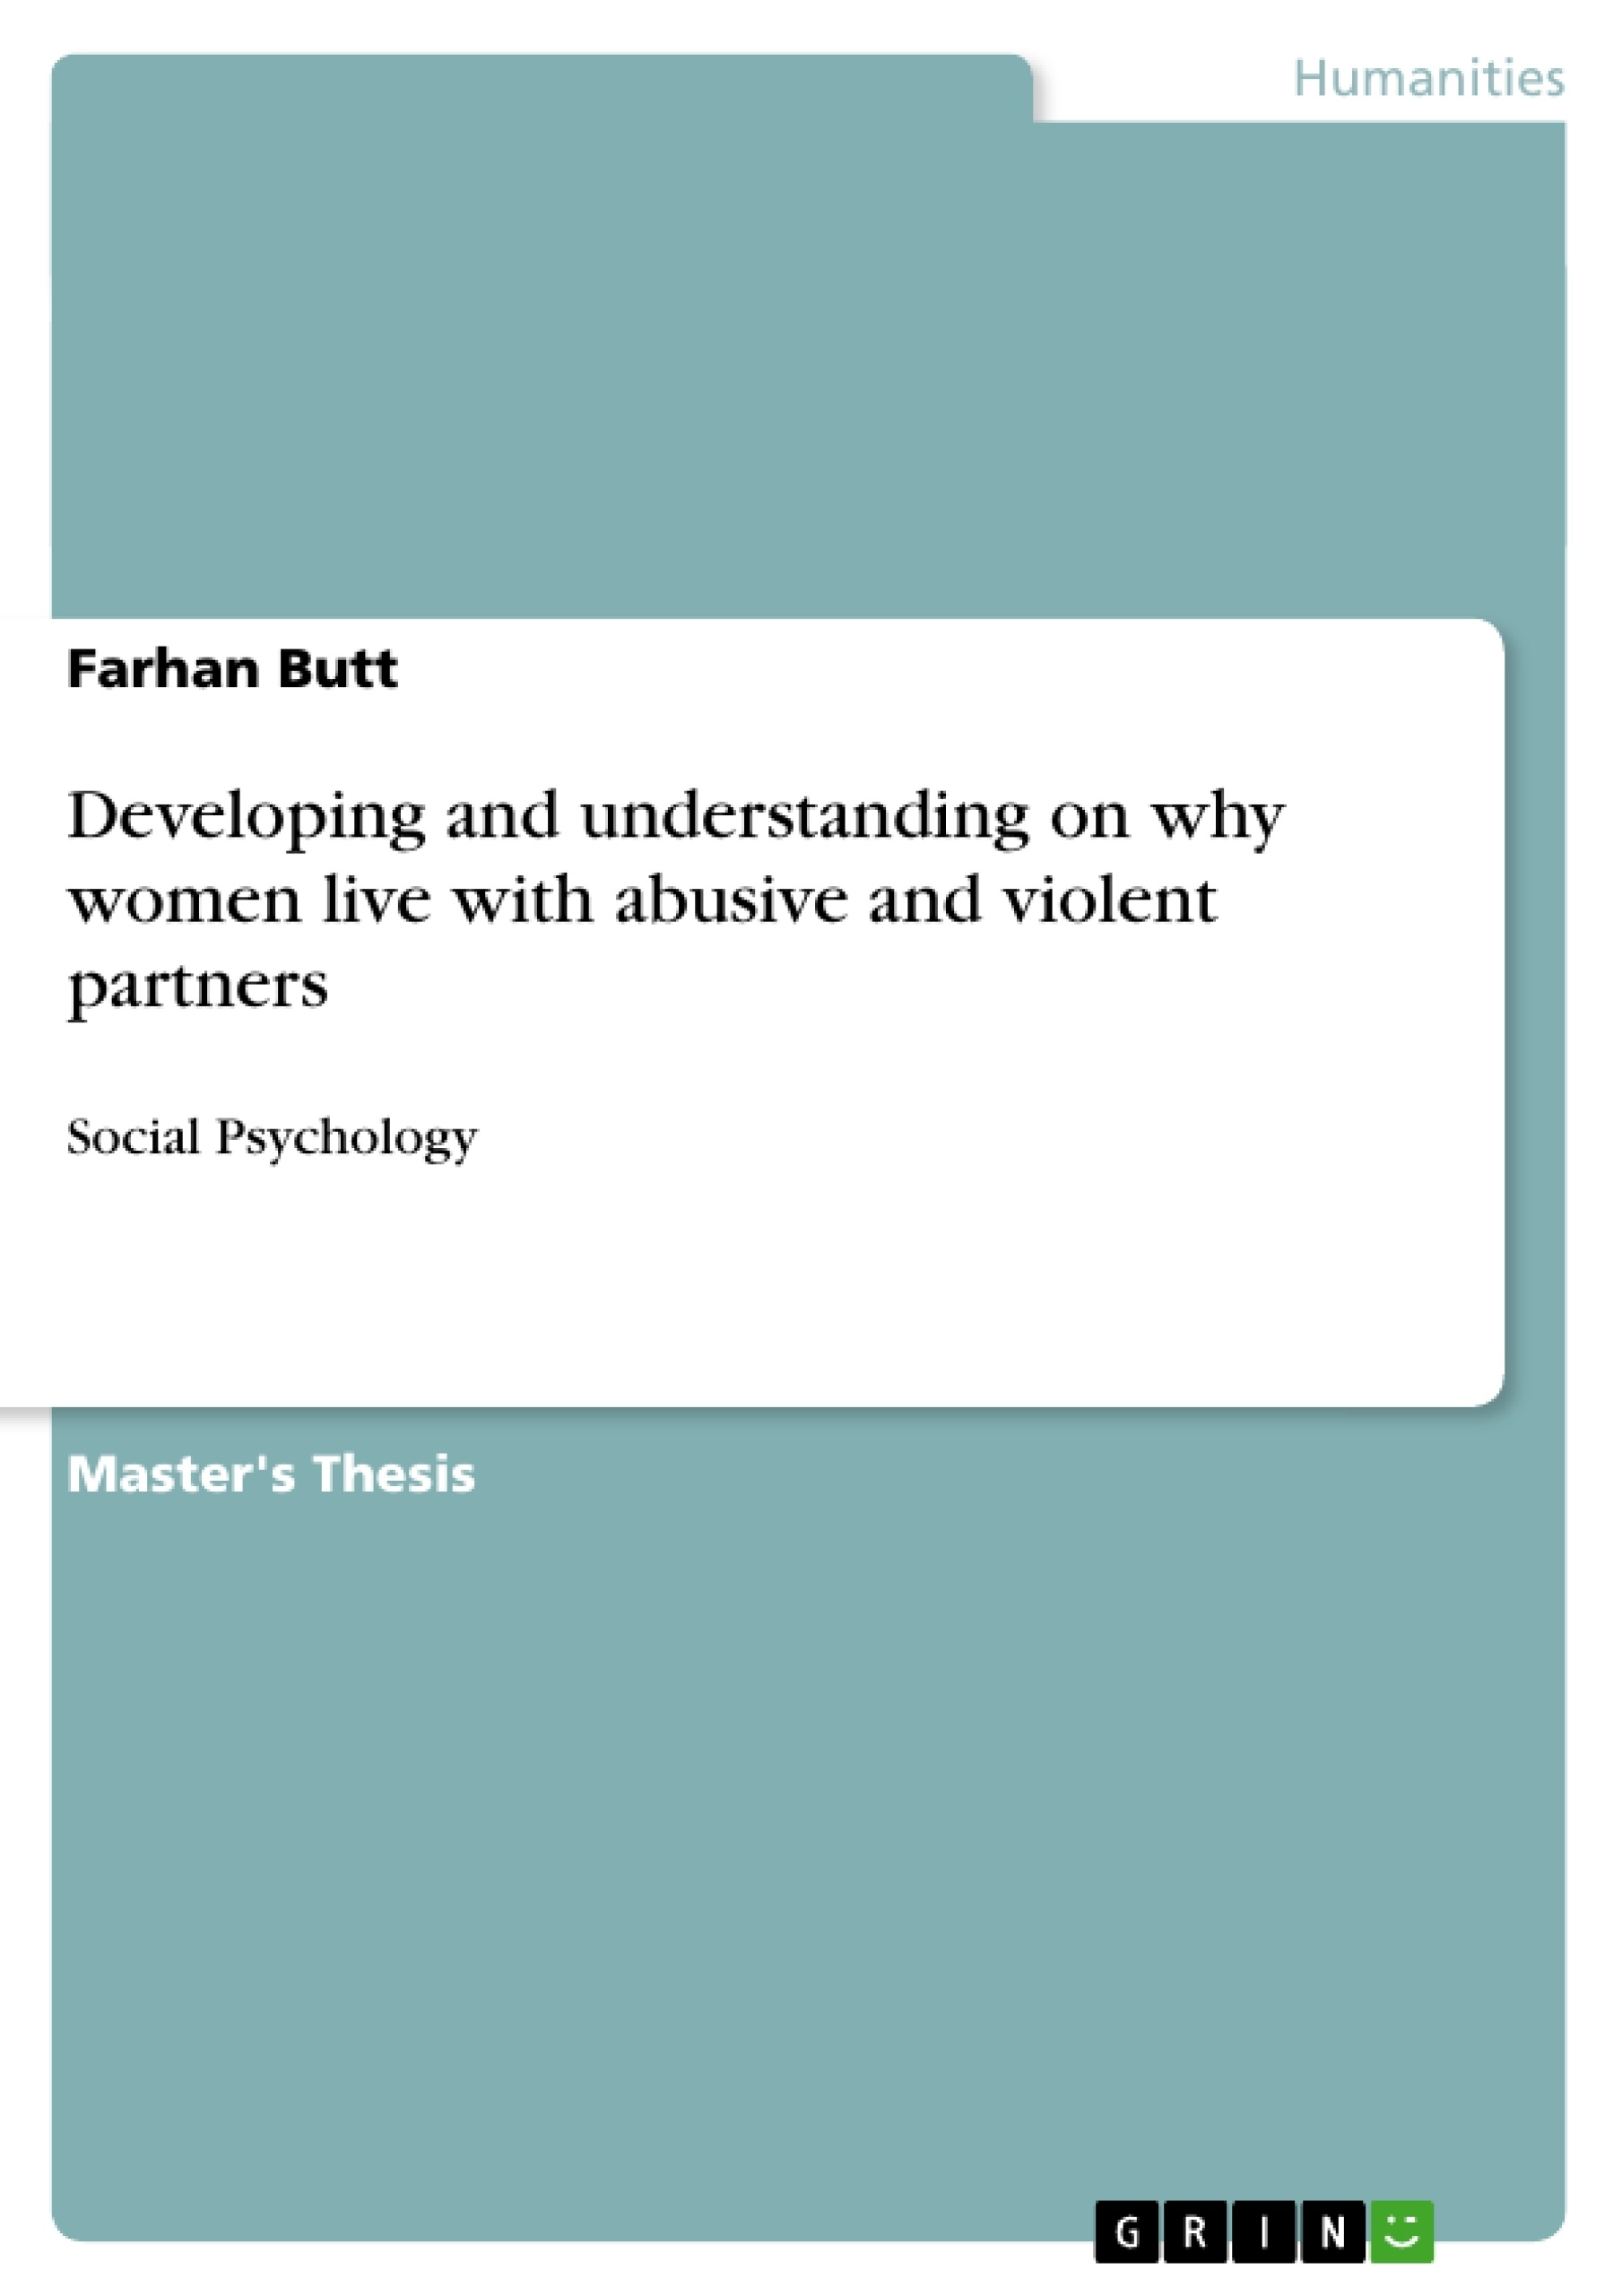 Title: Developing and understanding on why women live with abusive and violent partners